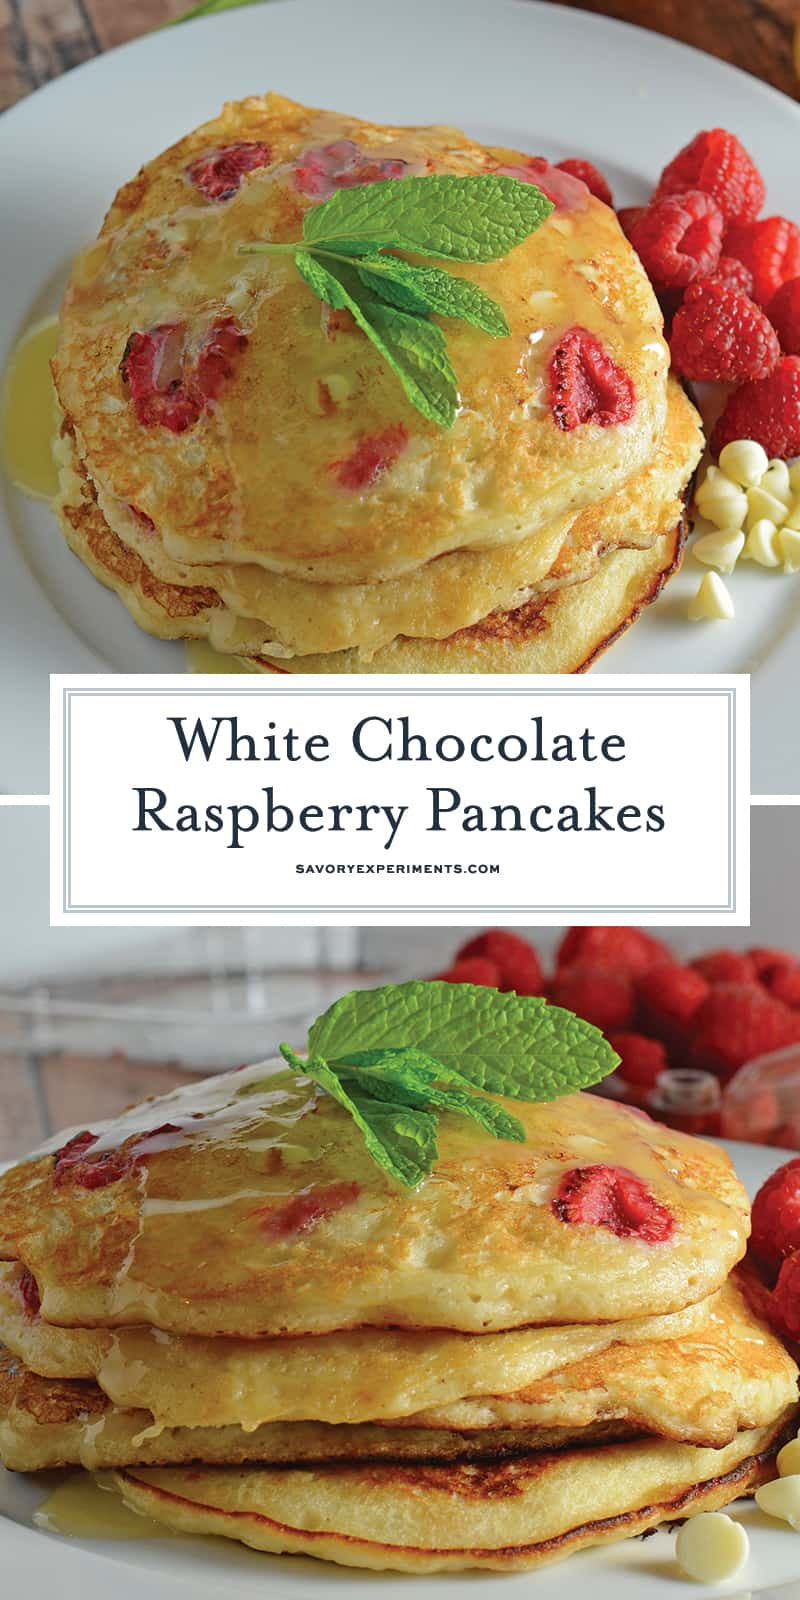 These White Chocolate Raspberry Pancakes are one of the best homemade pancakes recipes you'll find. Packed full of fresh raspberries and white chocolate chips! #homemadepancakes #fluffypancakes #pancakebatter www.savoryexperiments.com